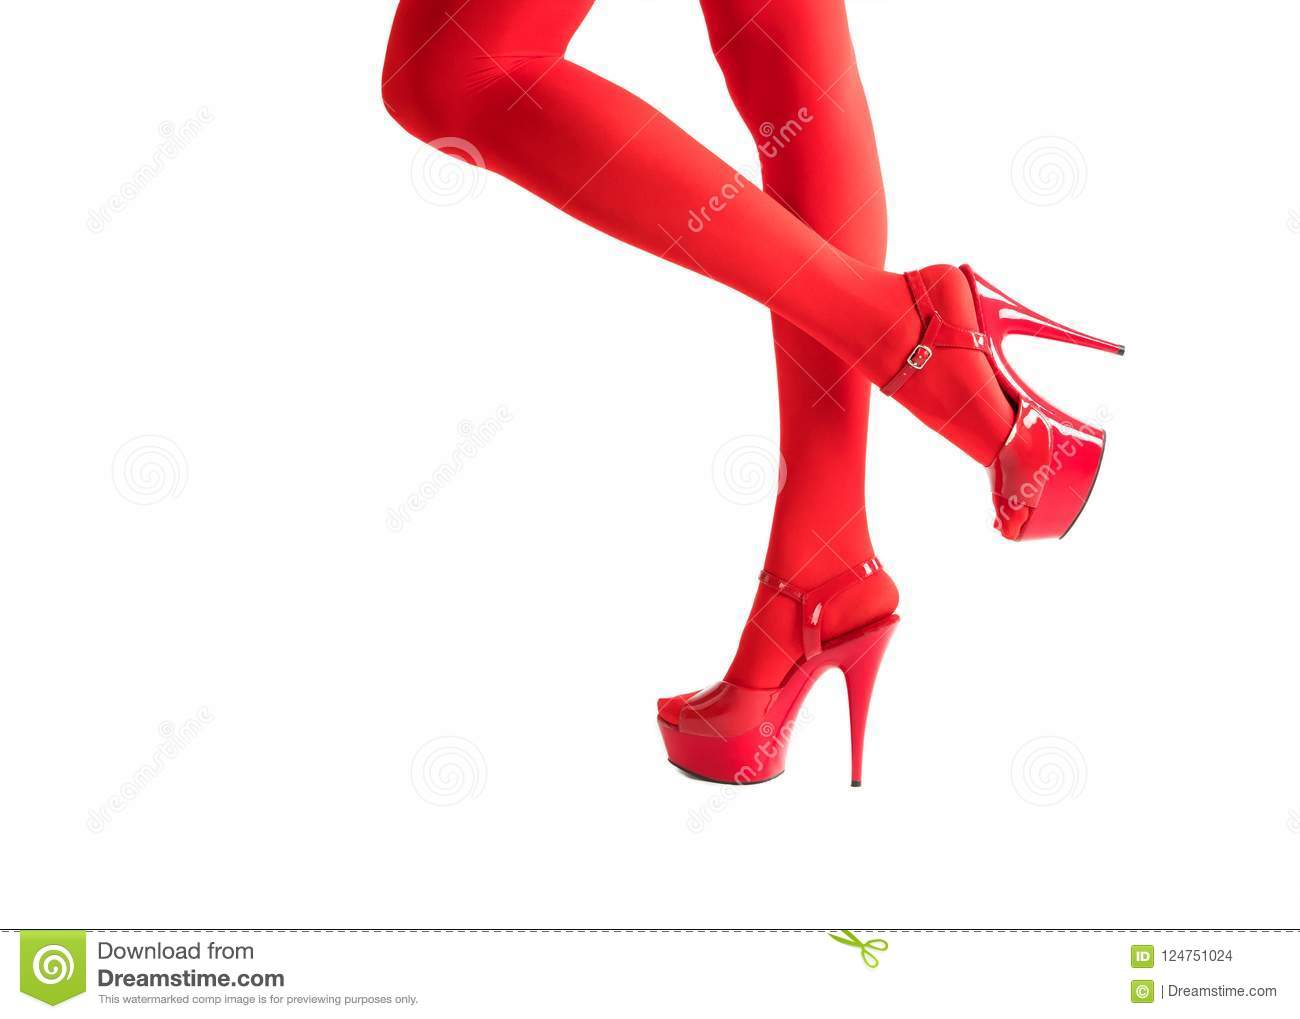 Female Legs In Fetish Red Stockings And Red High Heels Isolated